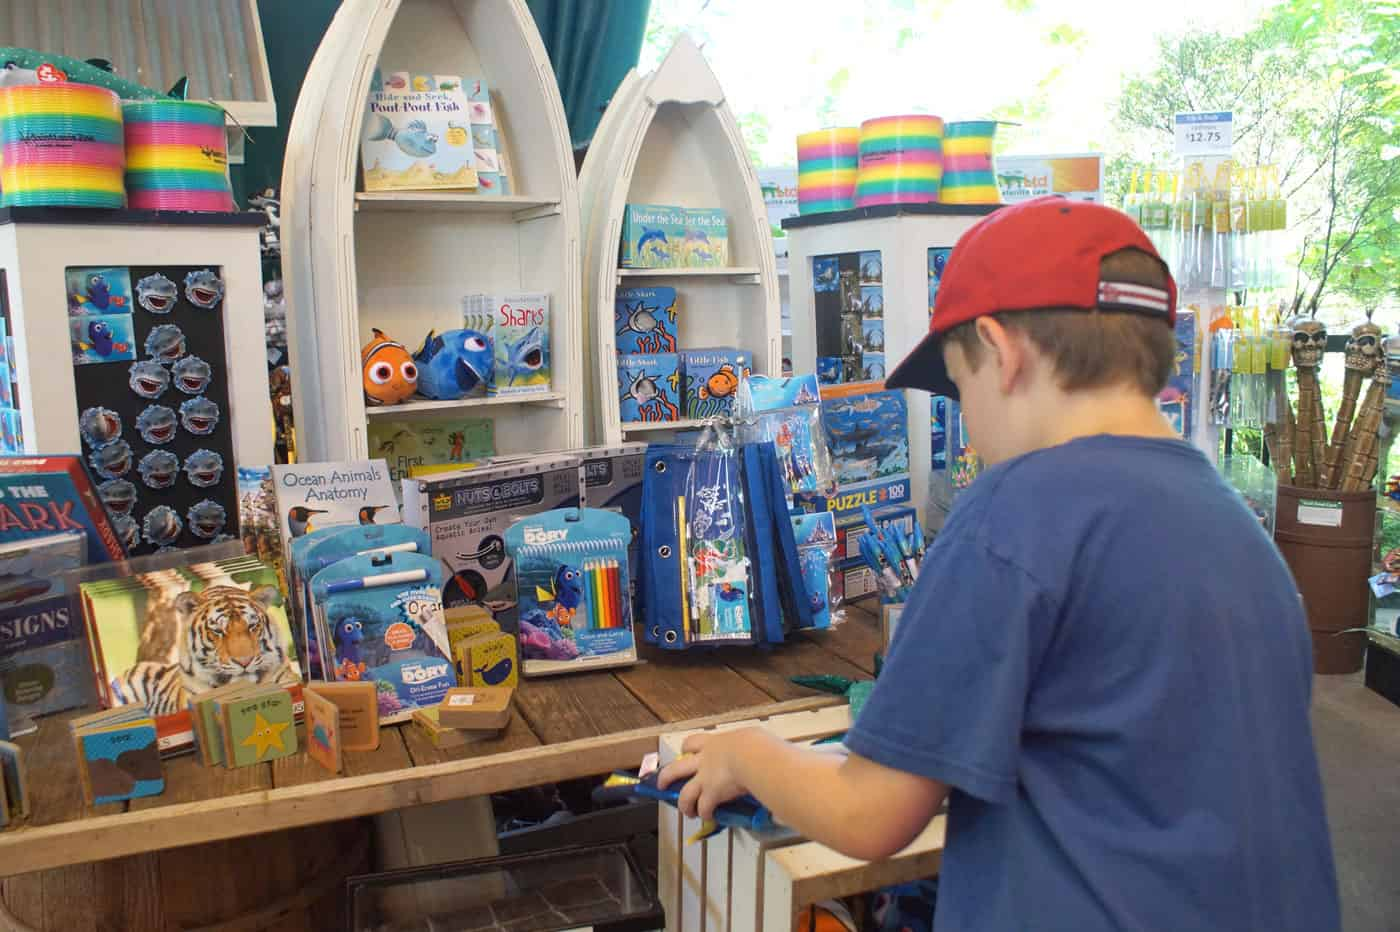 Kid shopping at a St. Louis Zoo gift shop full of fish toys.